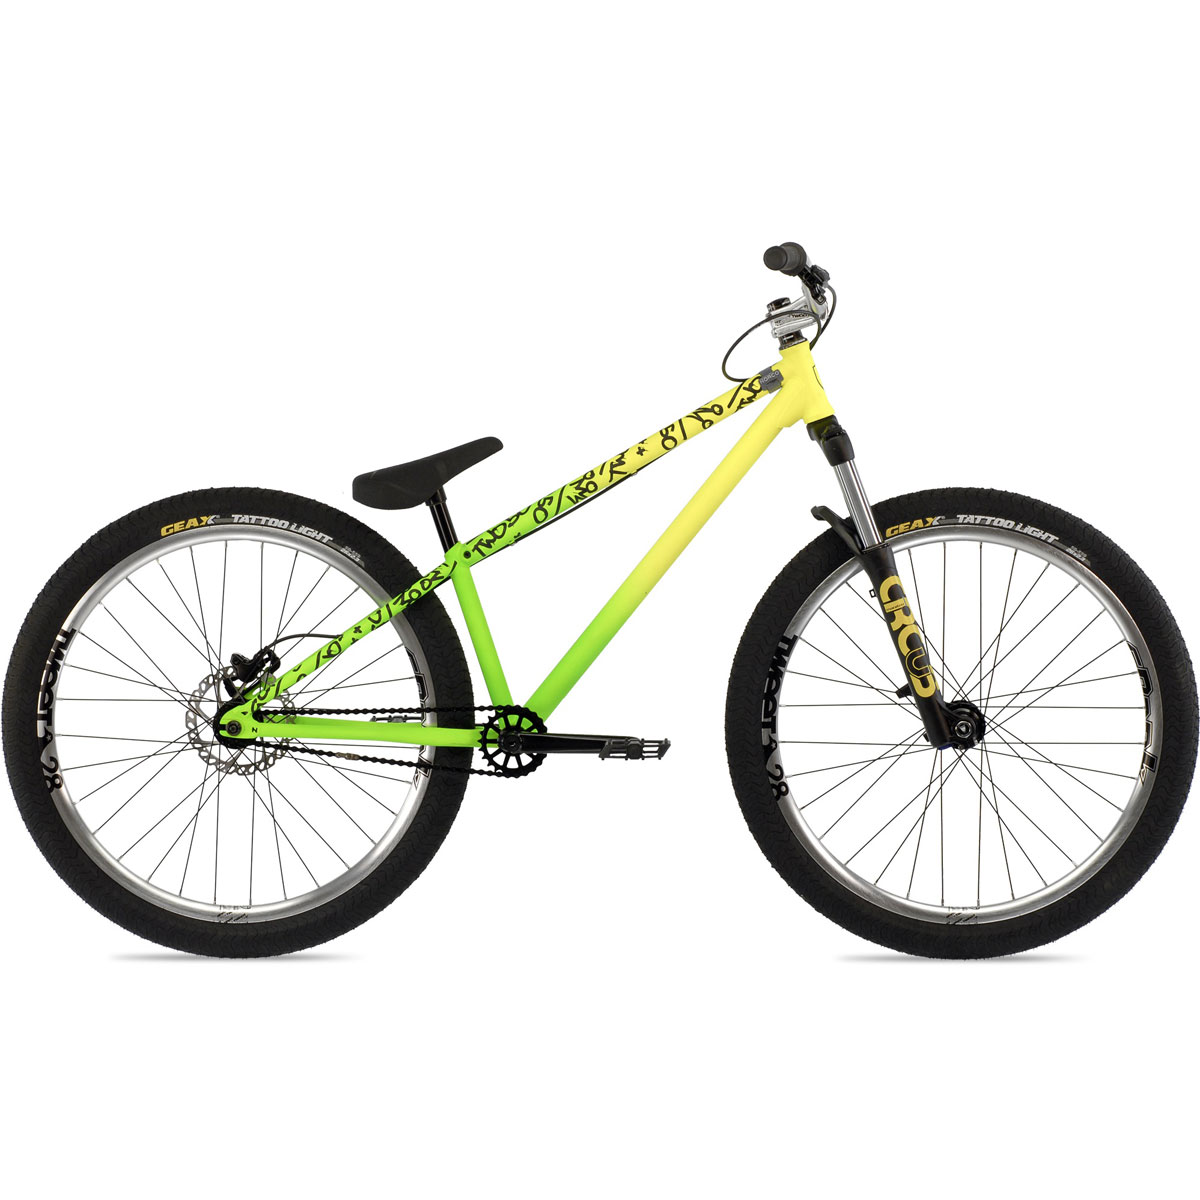 Norco Two50 Dirt Jump Bike